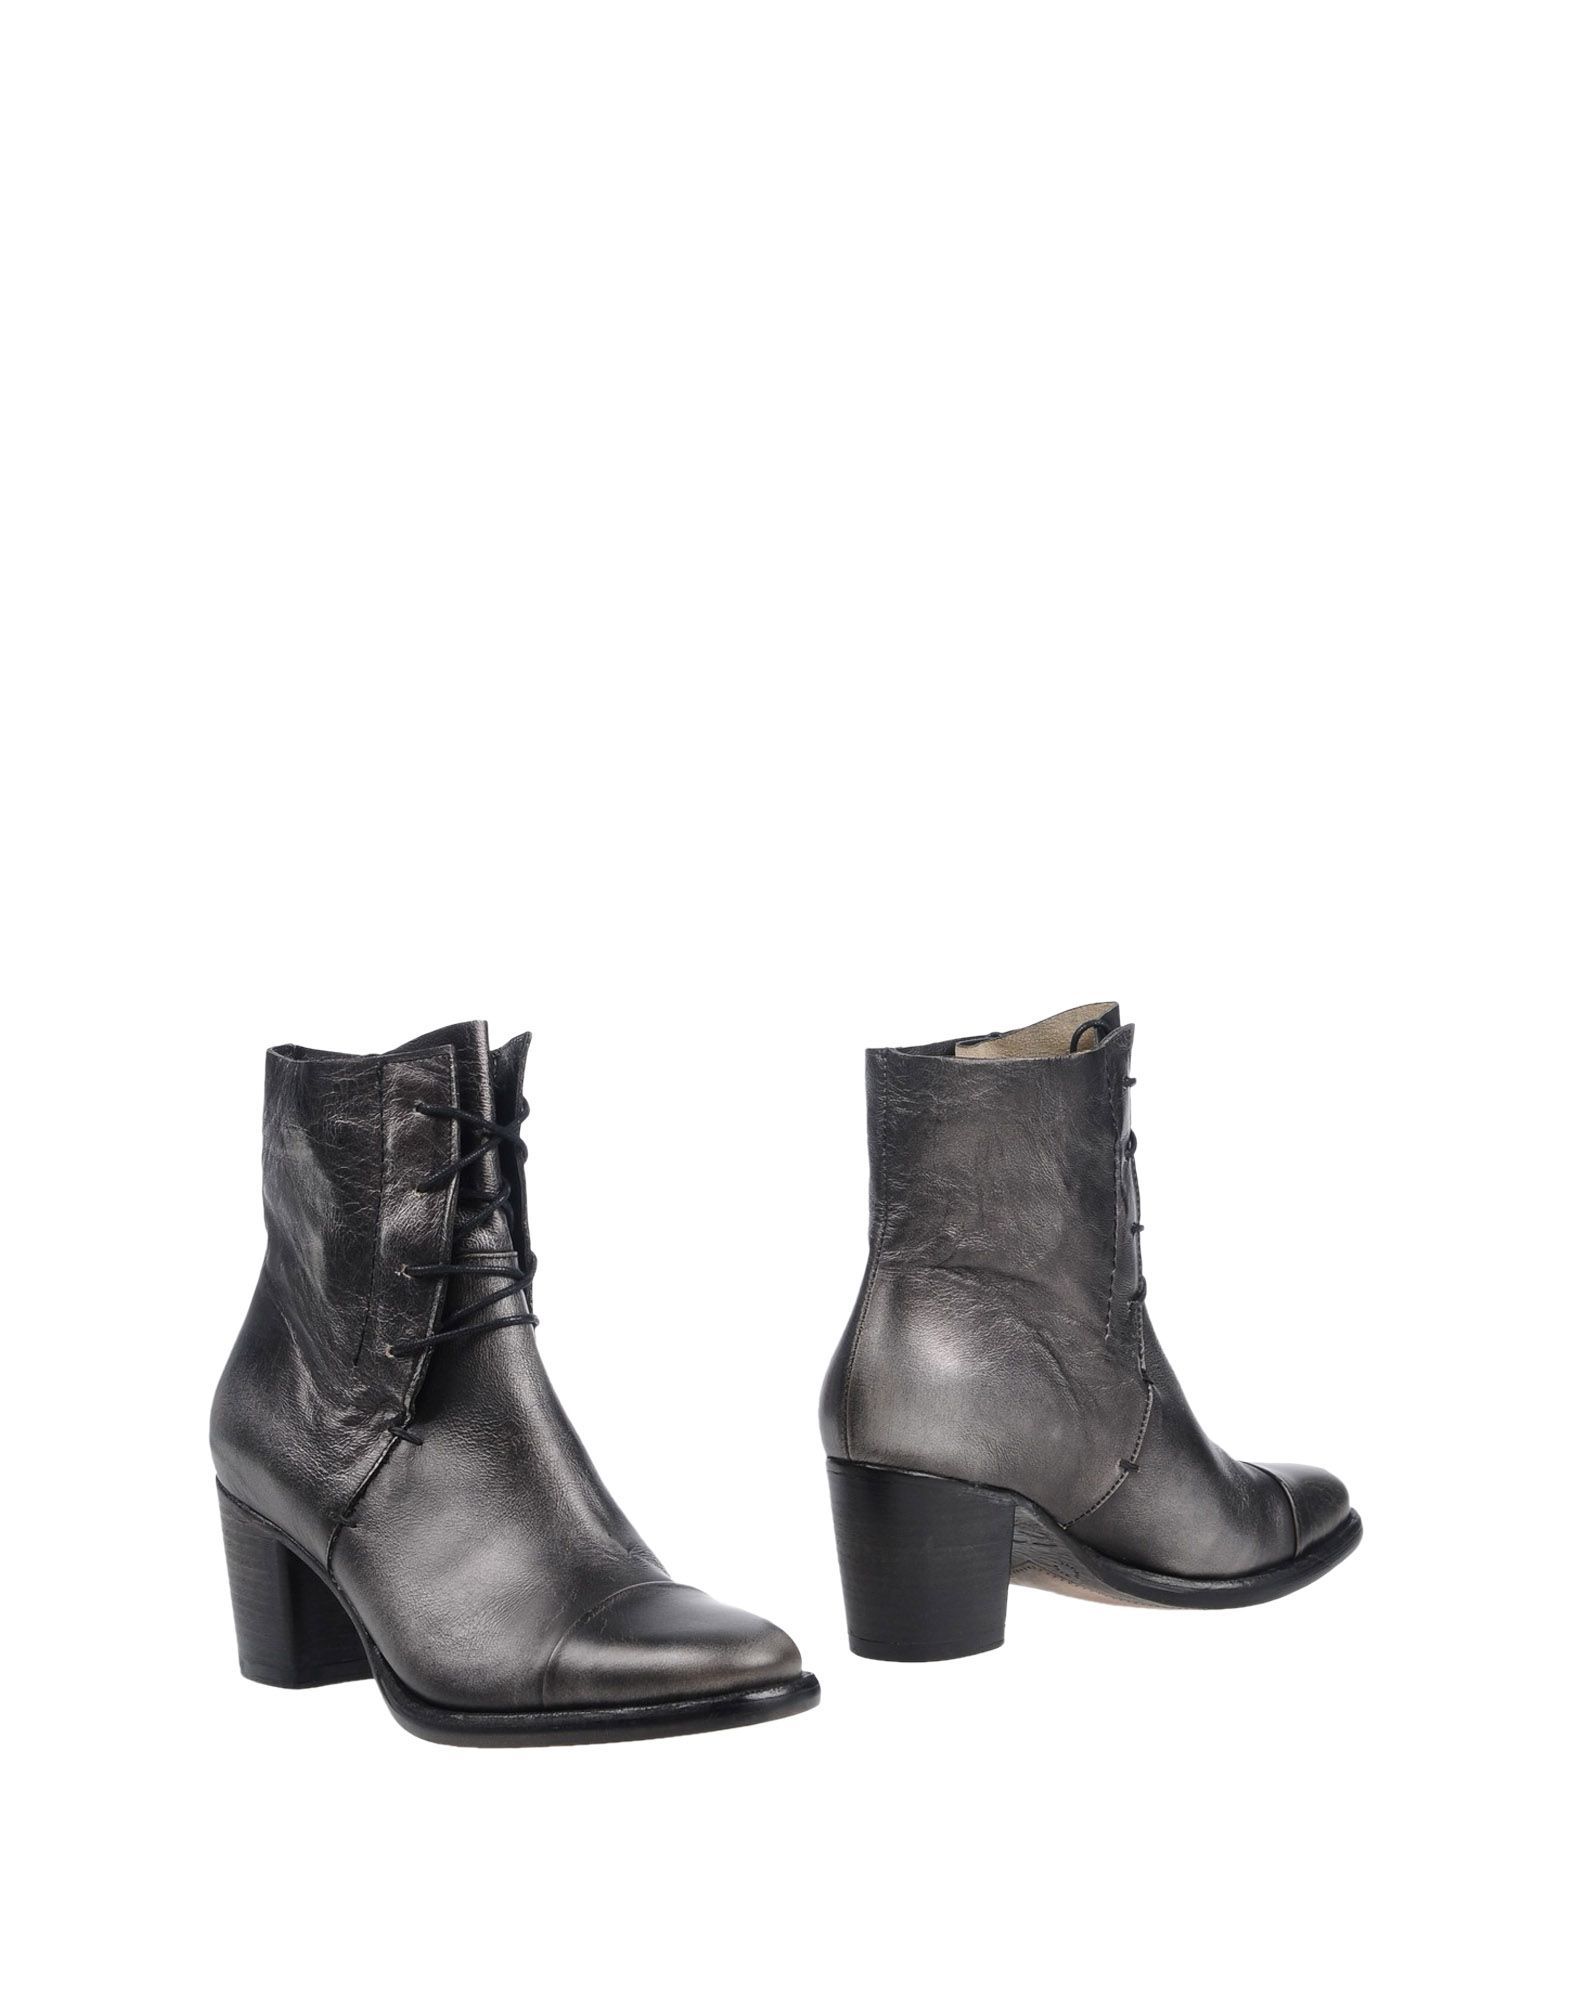 Creation Of Minds Minds Of Ankle Boot - Women Creation Of Minds Ankle Boots online on  Australia - 11458011MJ 63ca1e